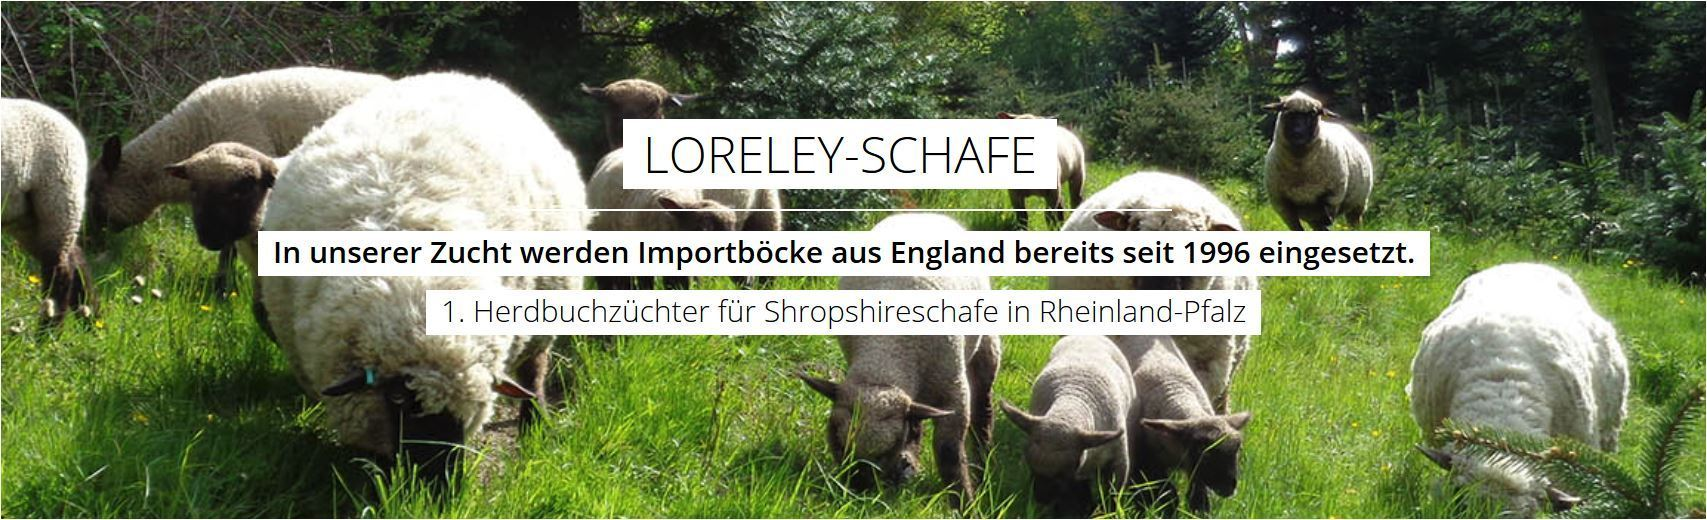 https://www.loreley-schafe.de/